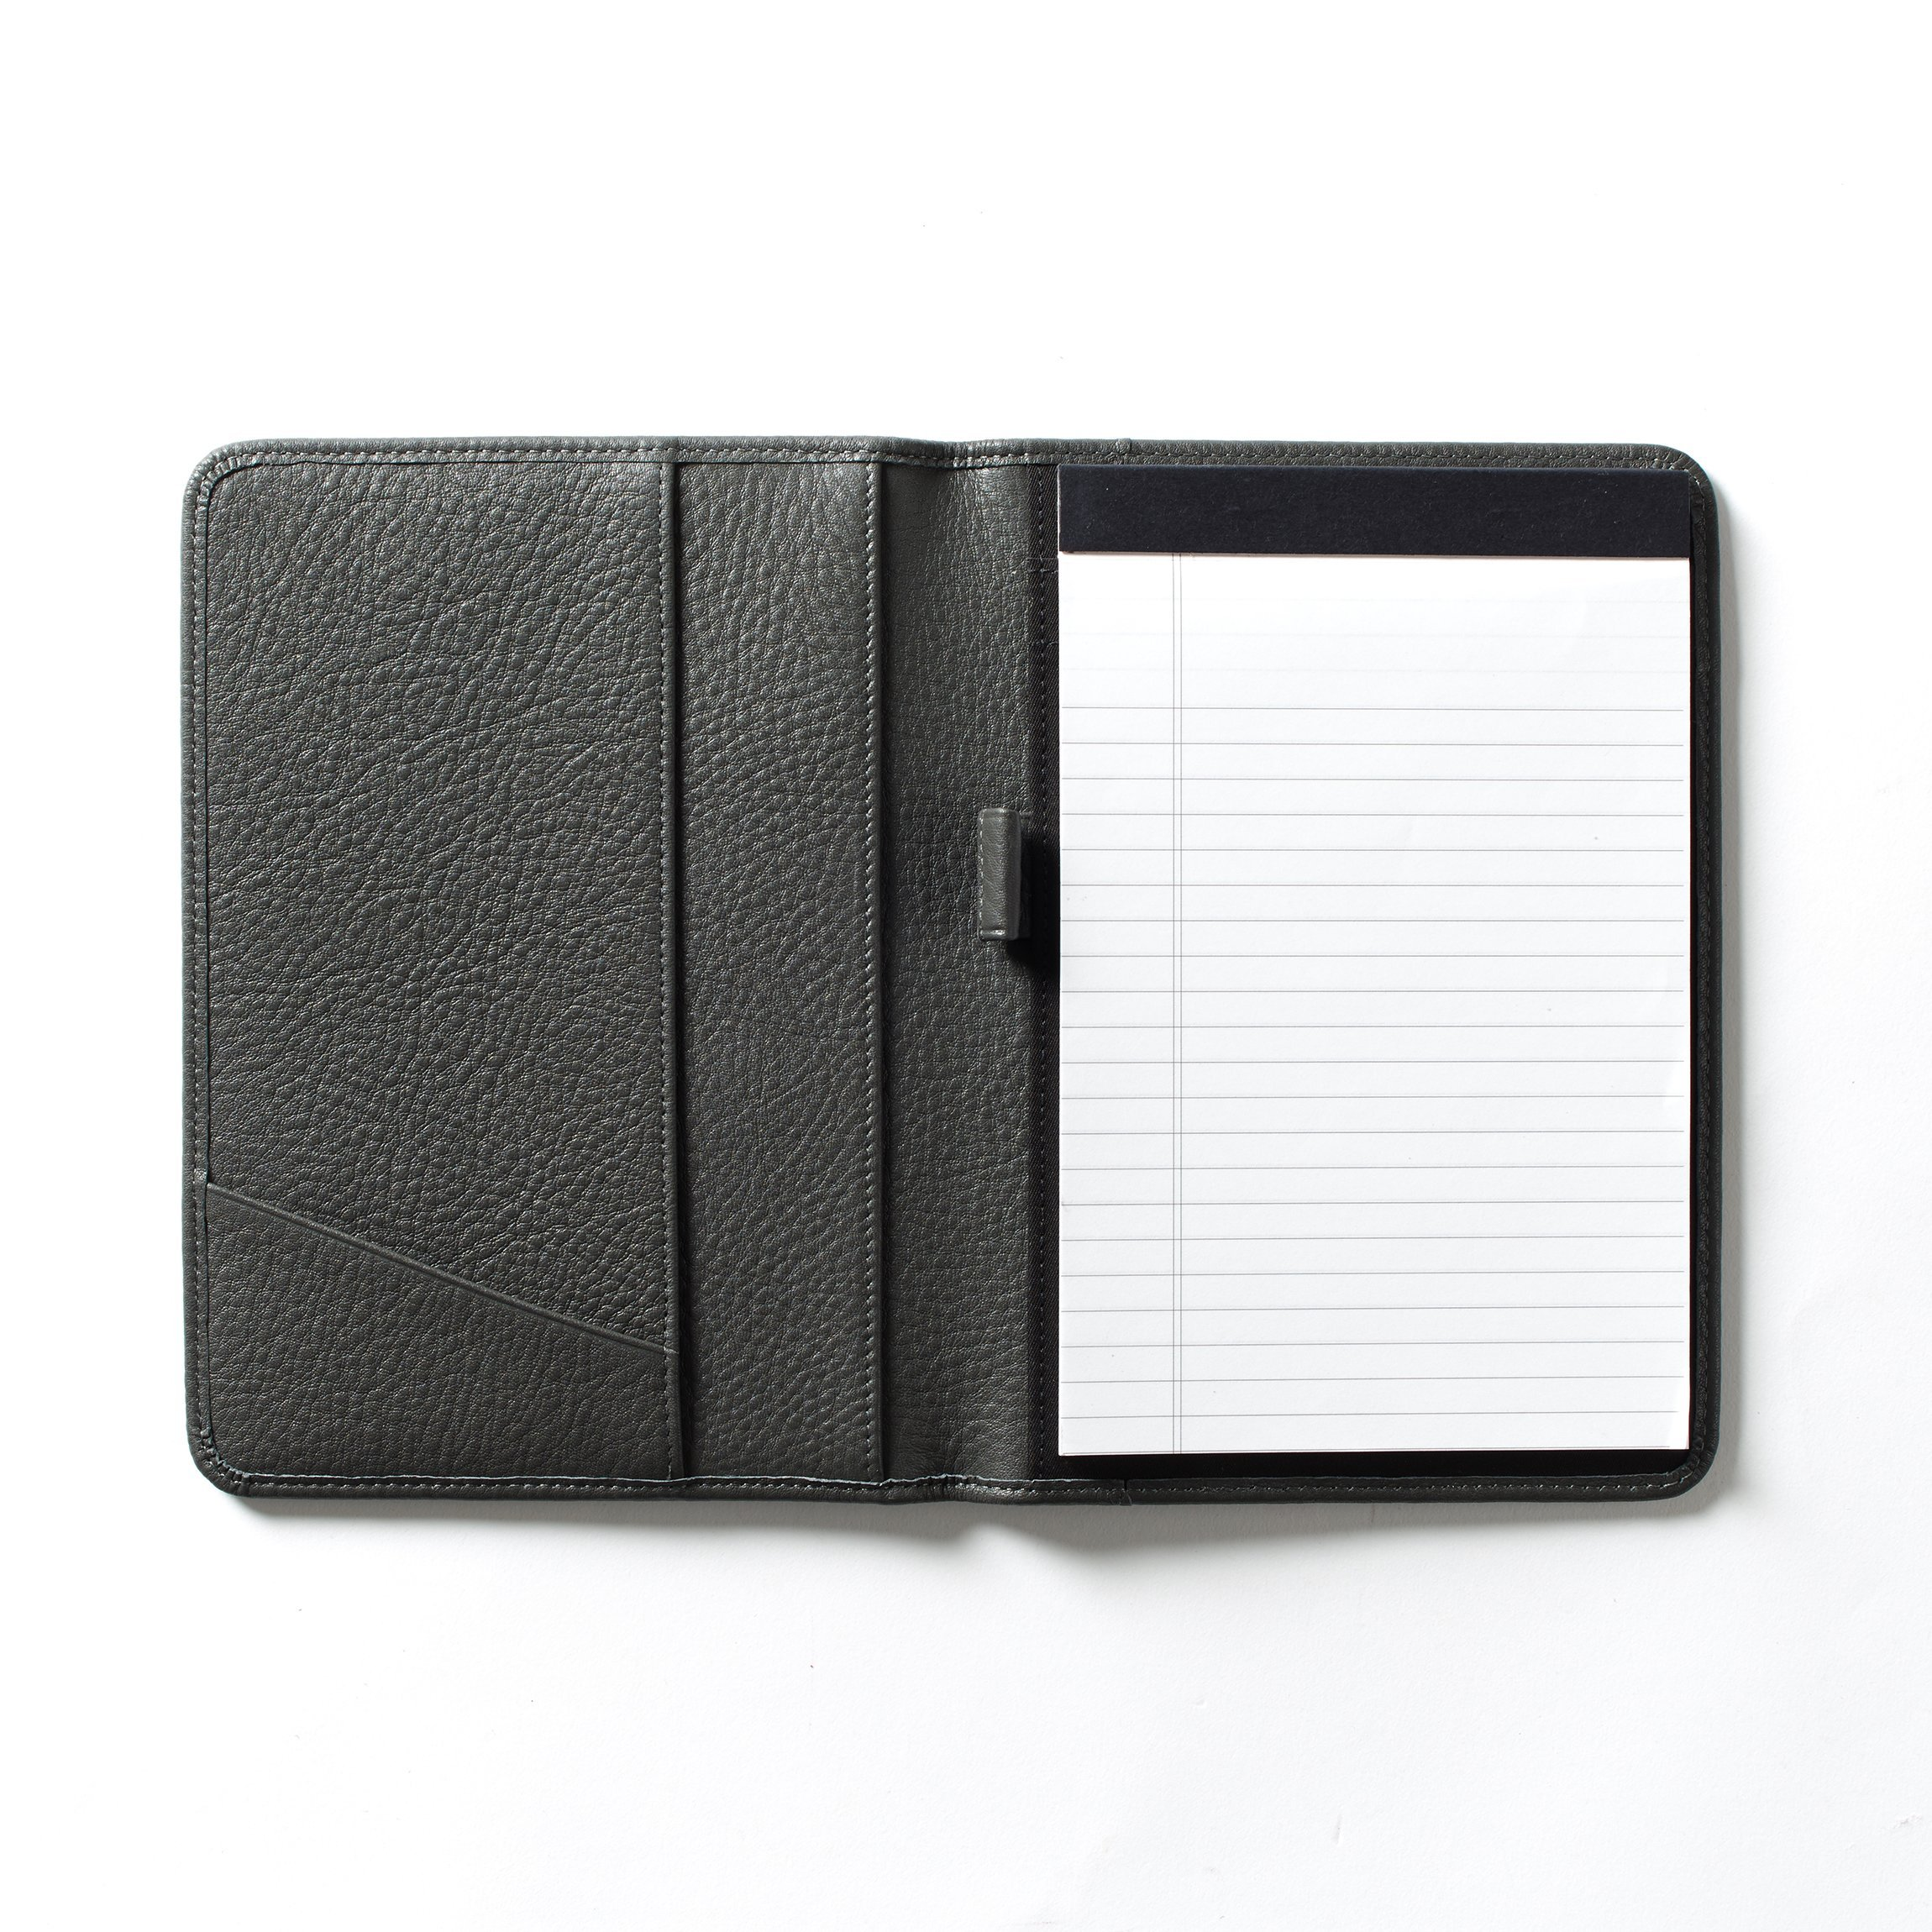 Leatherology Junior Padfolio with Pen Loop - Full Grain Leather Leather - Charcoal (gray) by Leatherology (Image #1)